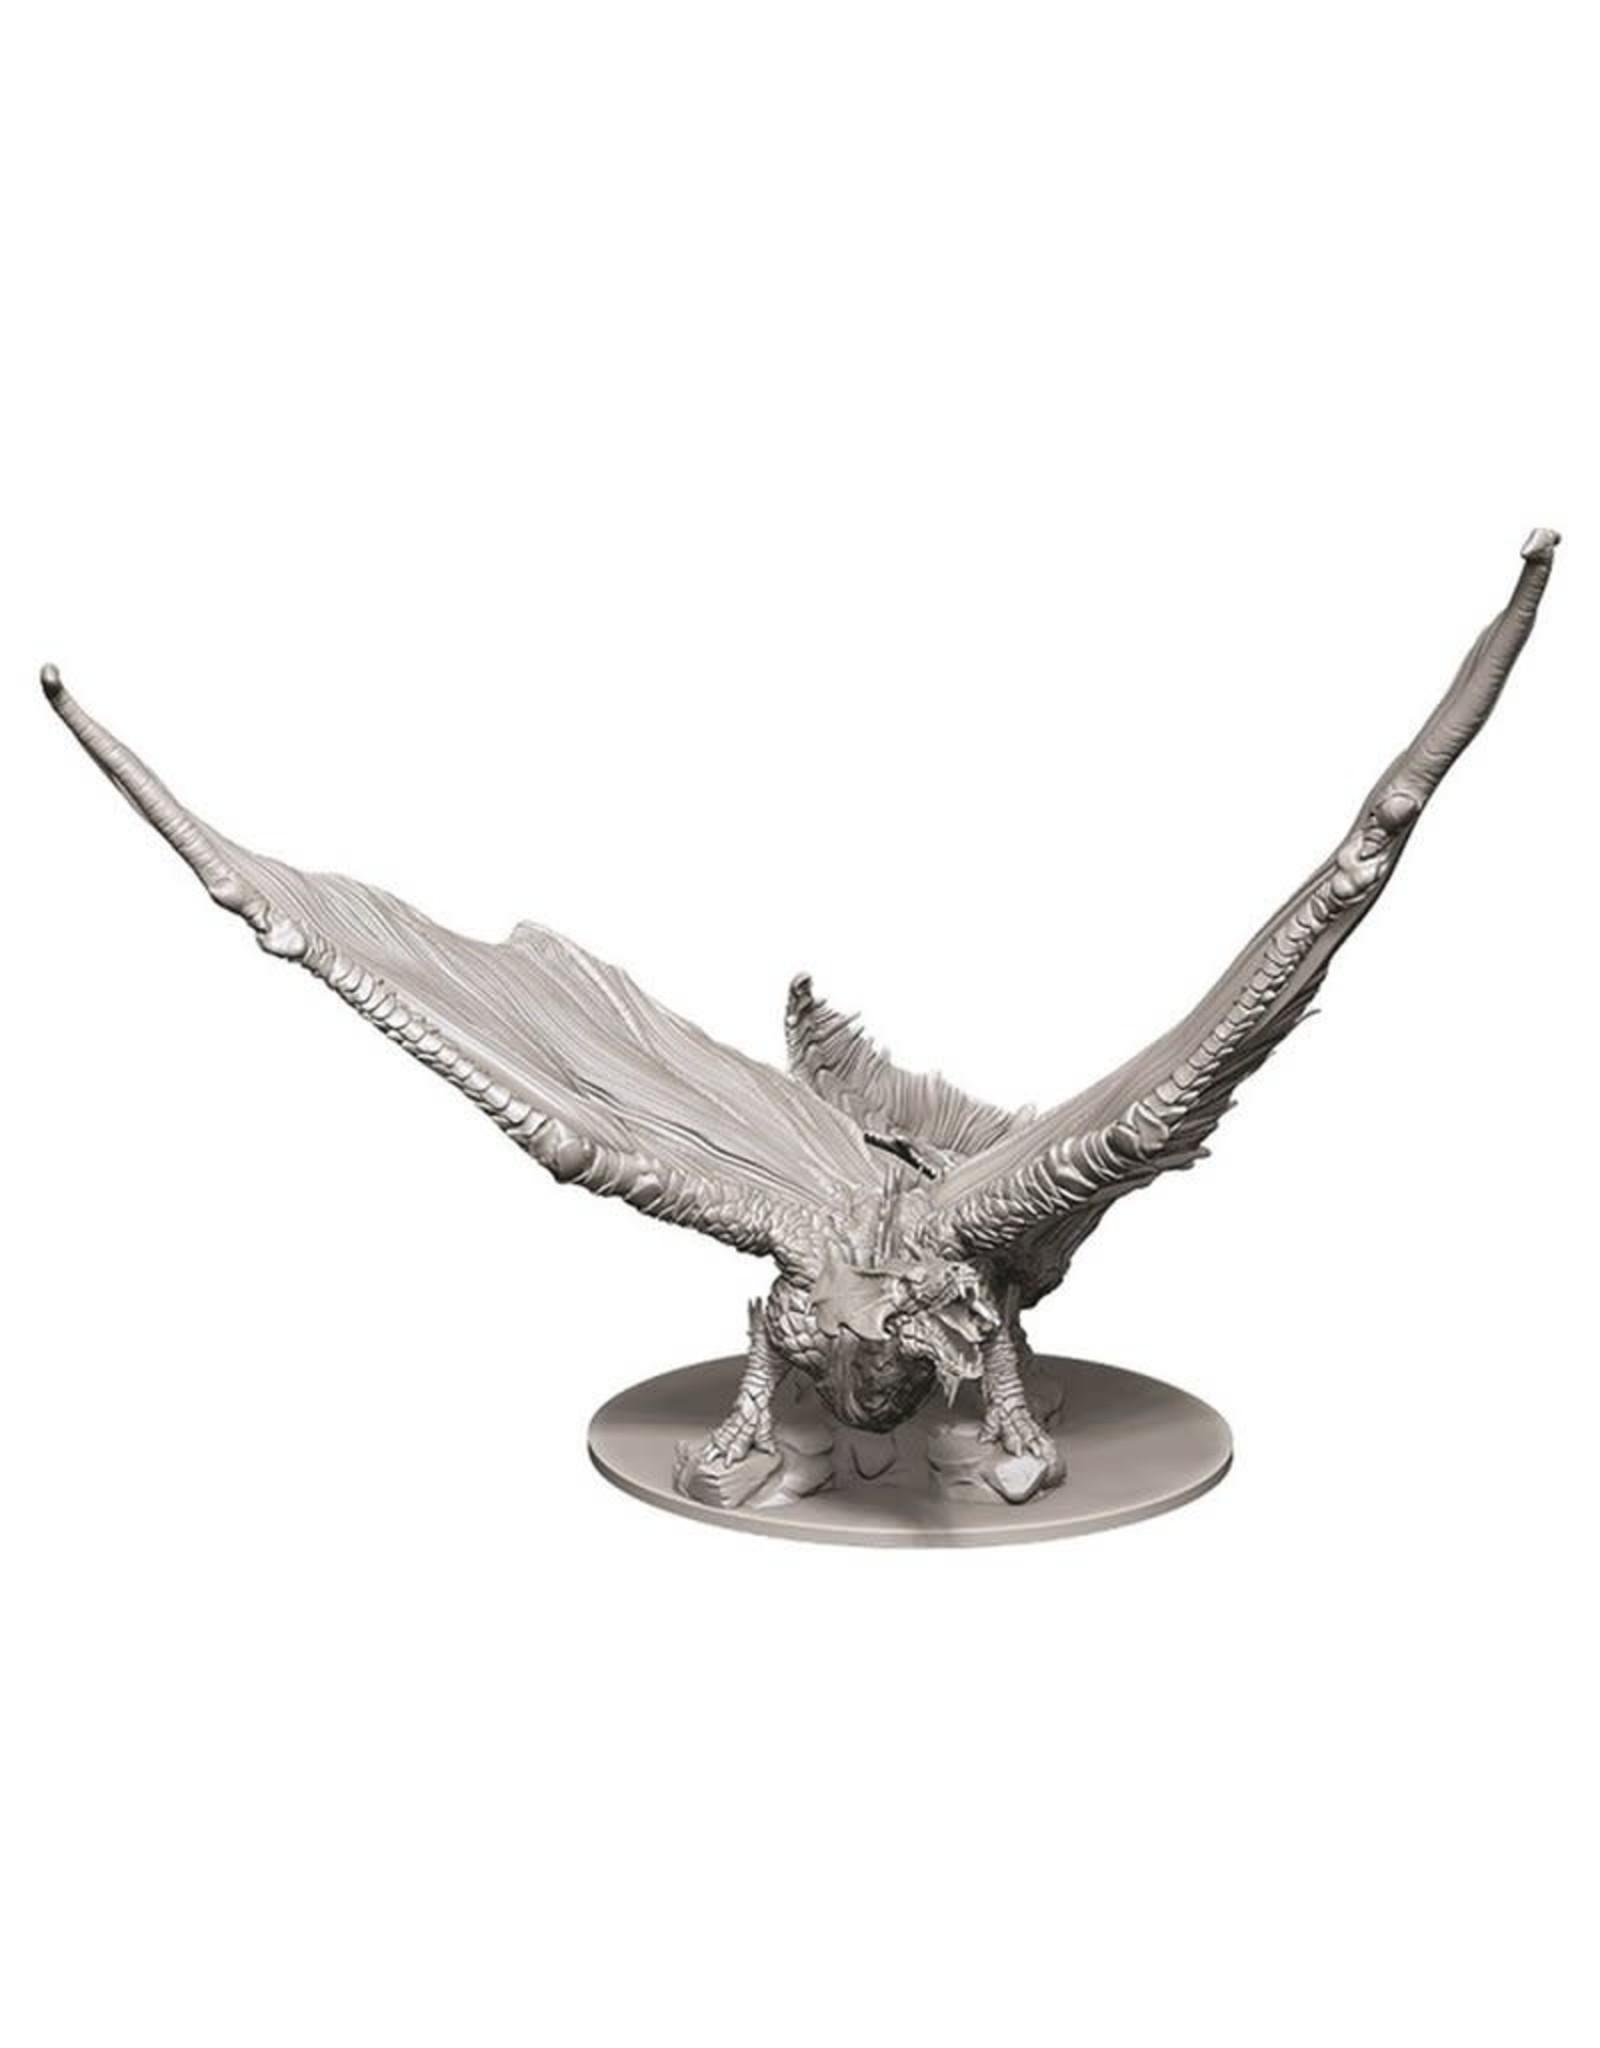 WizKids Dungeons & Dragons Nolzur's Marvelous Miniatures: Young Brass Dragon